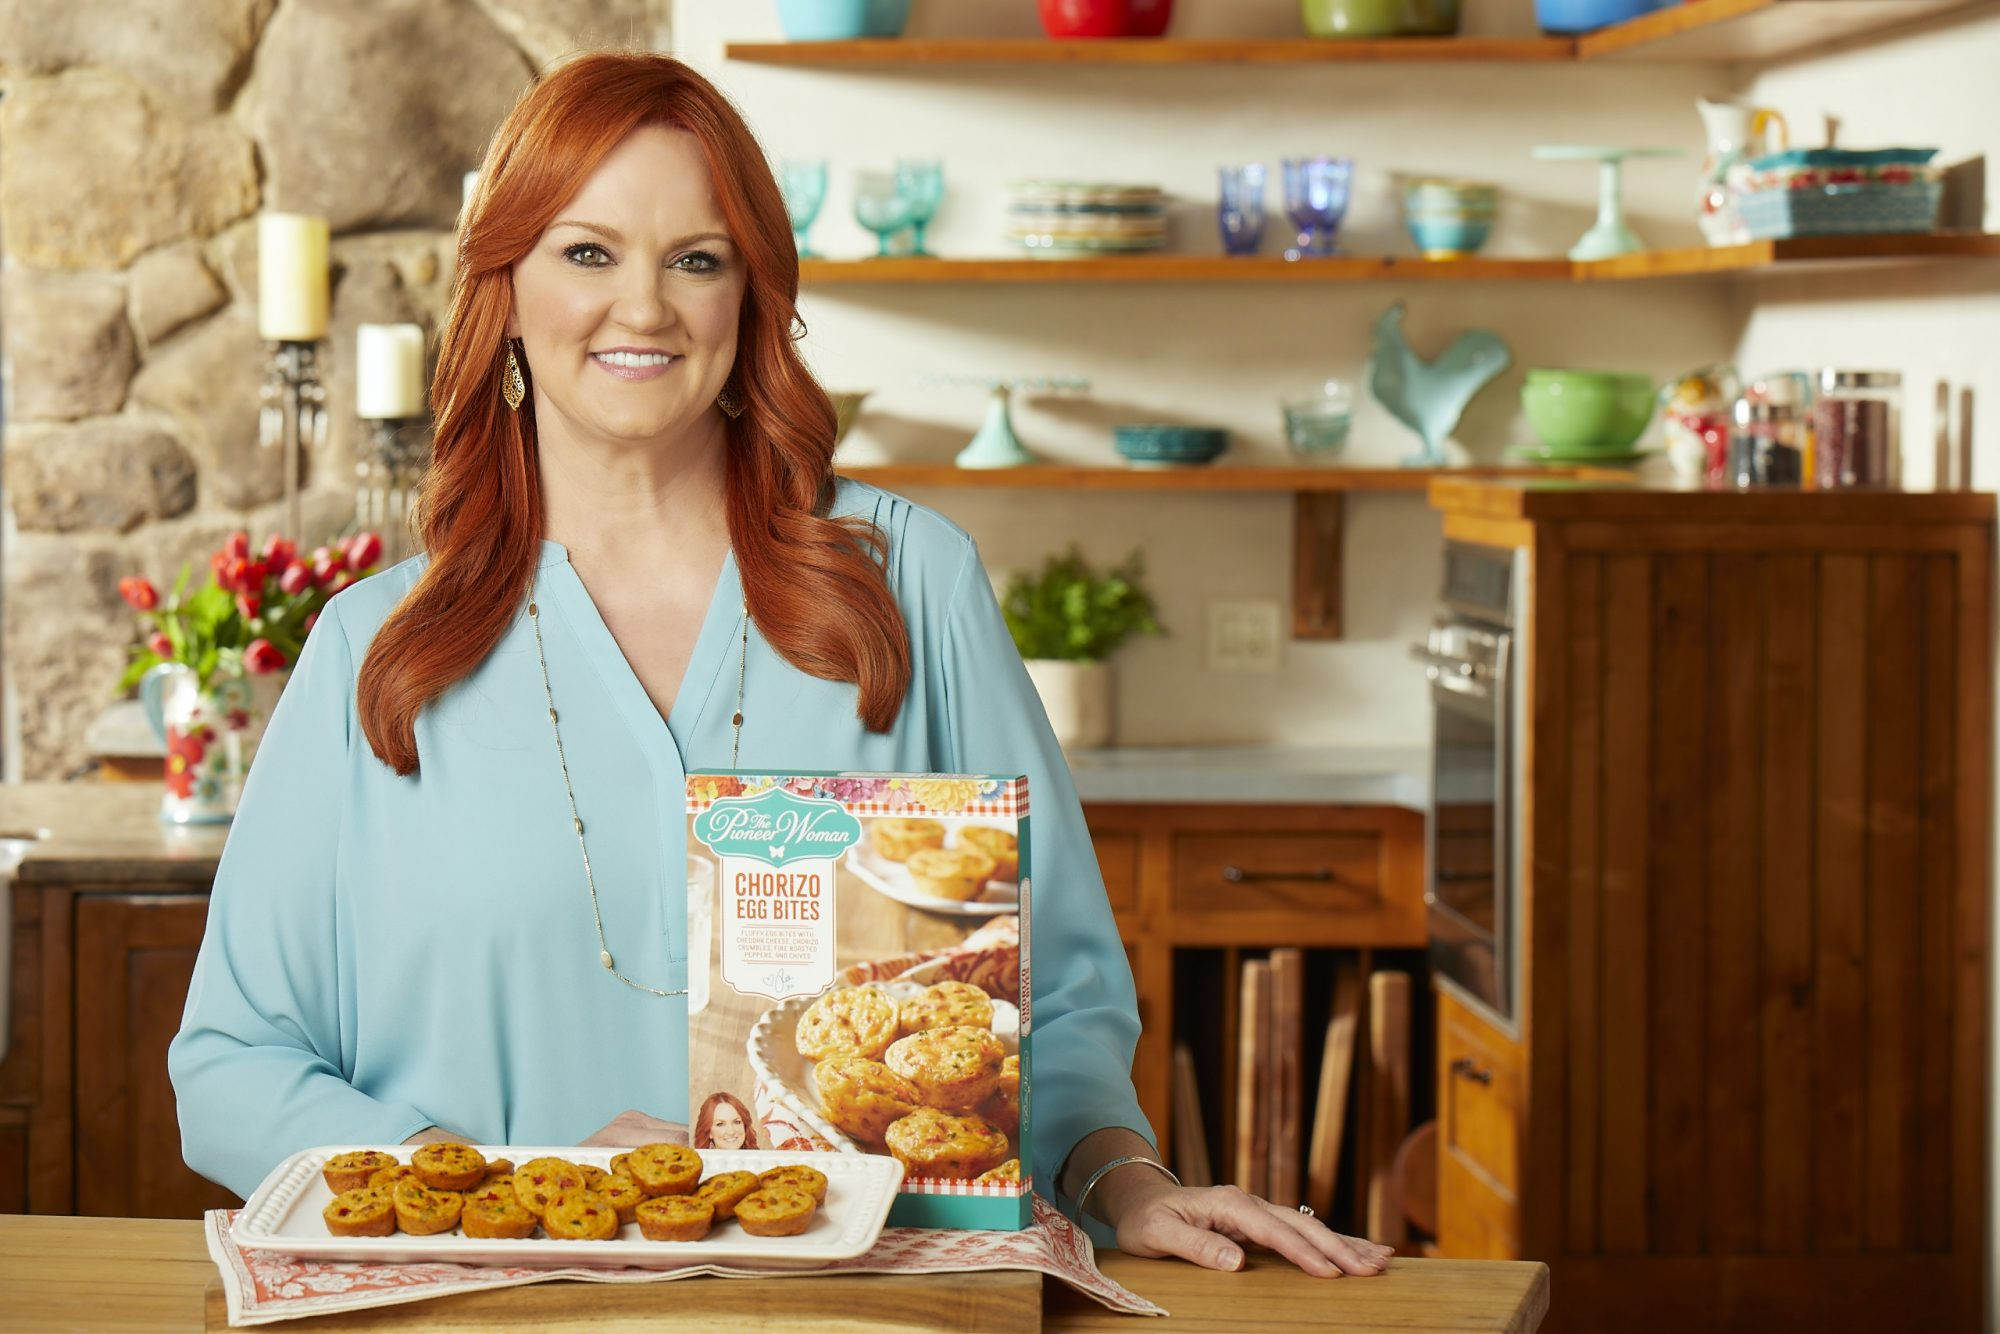 Ree Drummond Is Adding Even More Options to Her Comfort Food Line